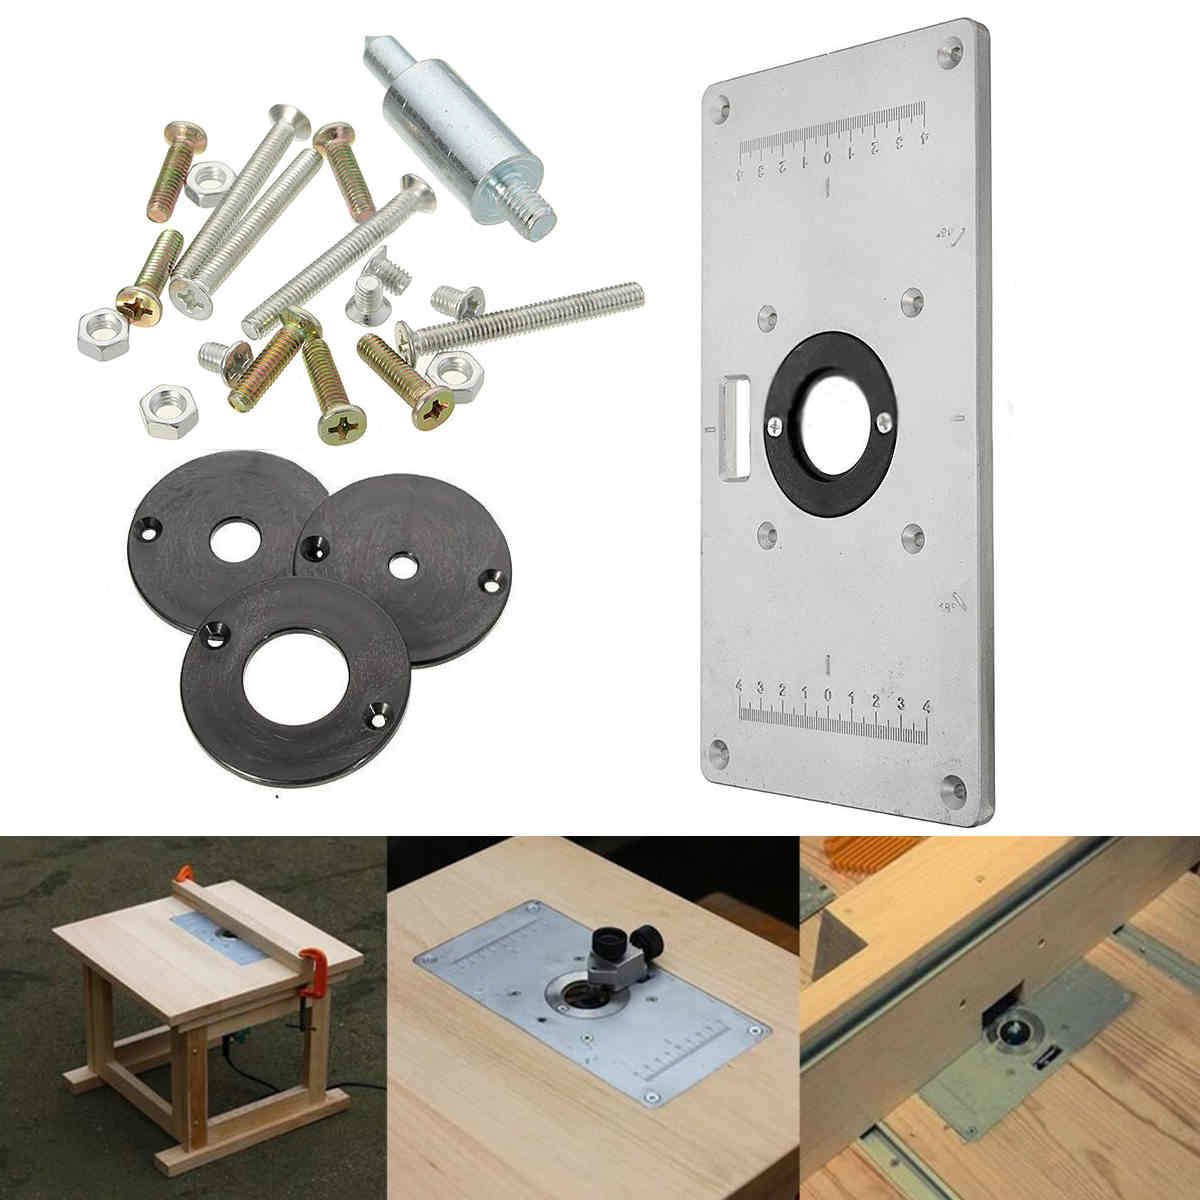 Diy router table insert plate - 2017 1pc Mayitr Aluminum Metal Router Table Insert Plate With 4pcs Router Insert Rings For Woodworking